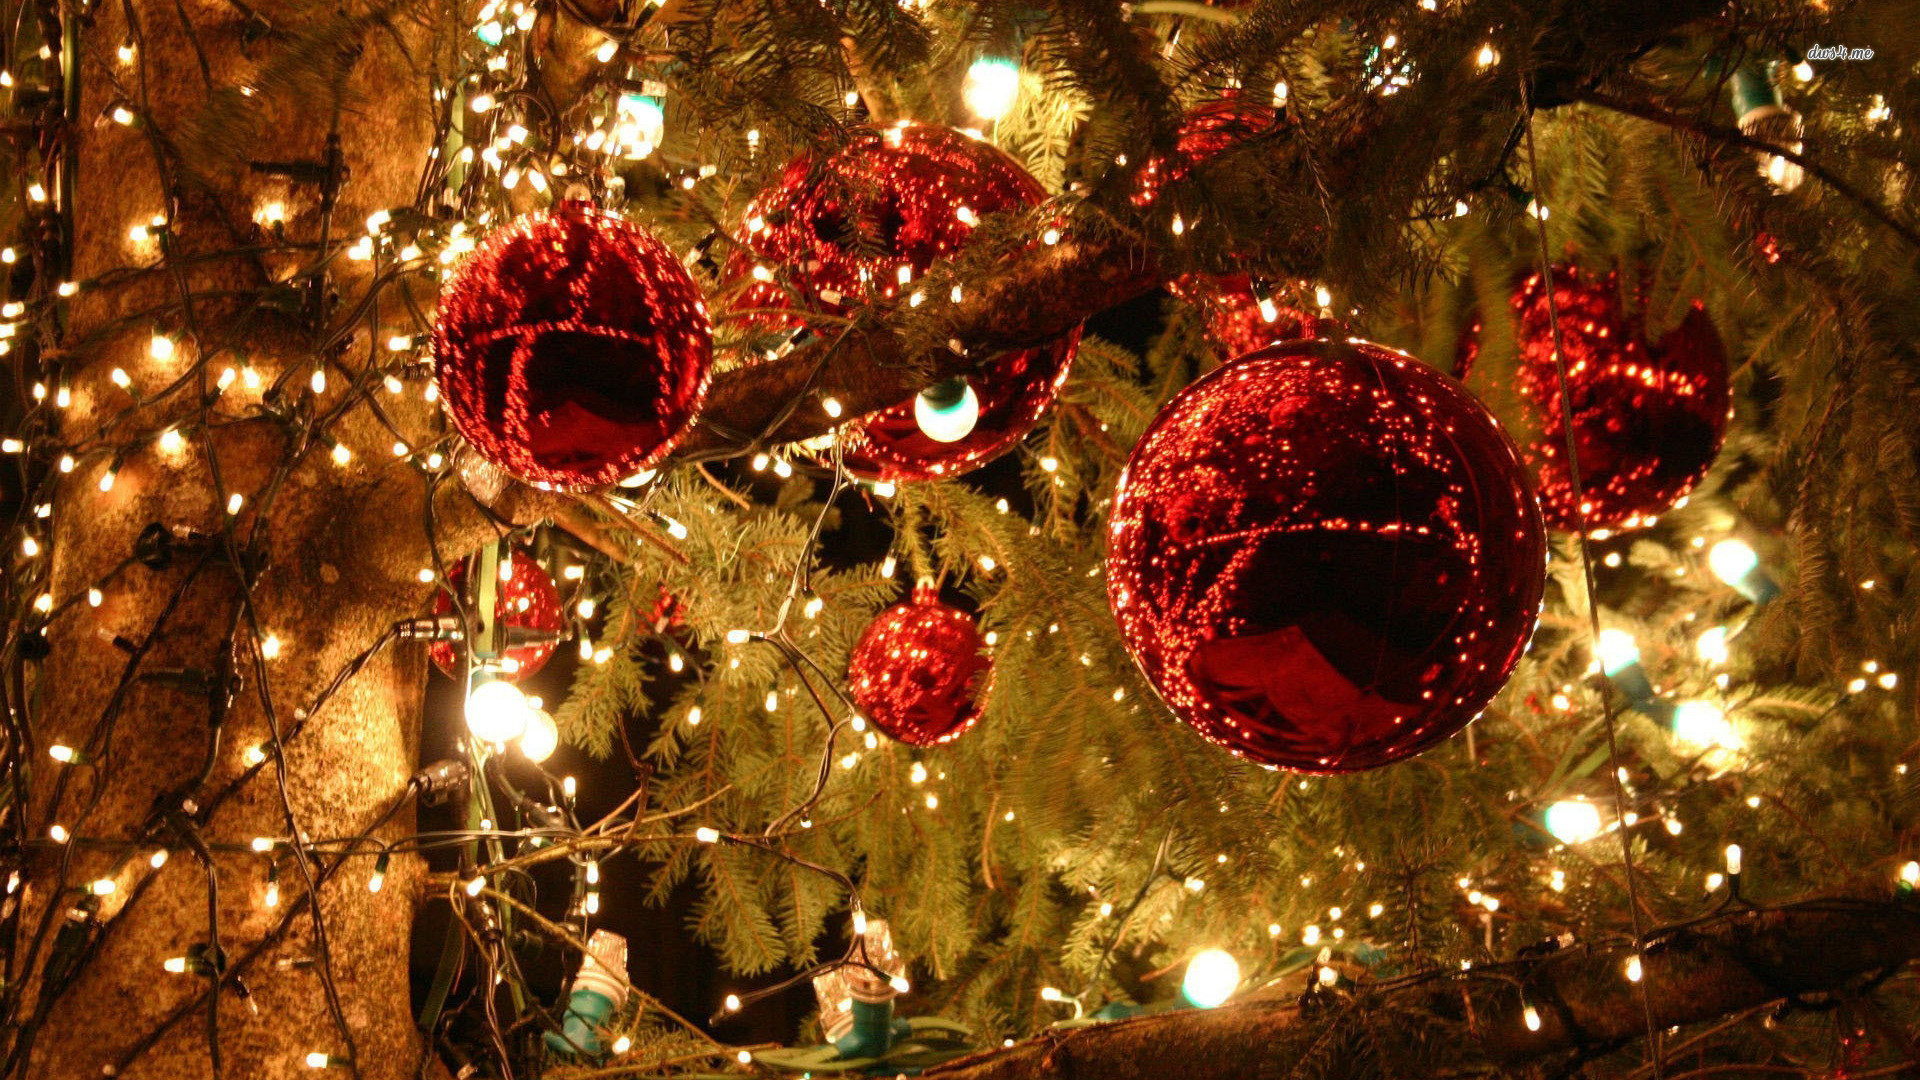 1920x1080 Christmas Holiday Decorations